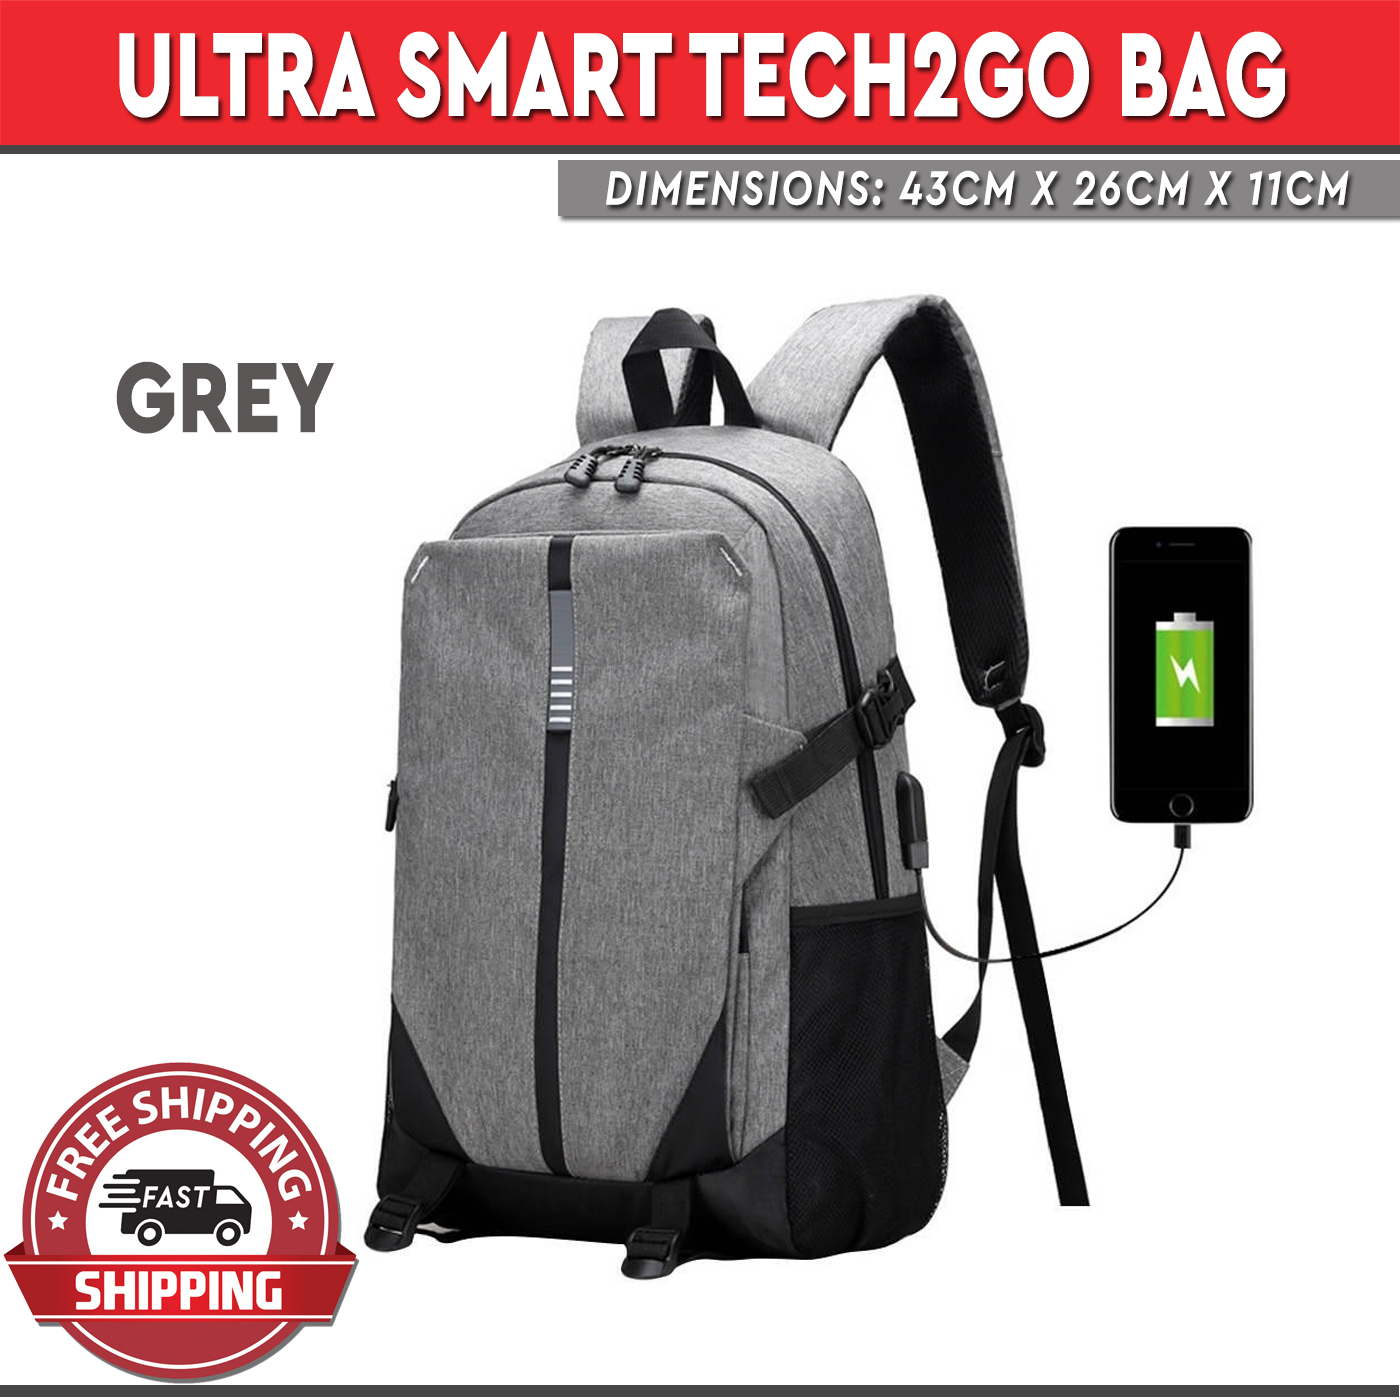 64165ee8c7 Ultra Smart Tech2Go Rechargable Large Capacity Laptop Bag anvas Backpack  with USB Charging Port - Gray